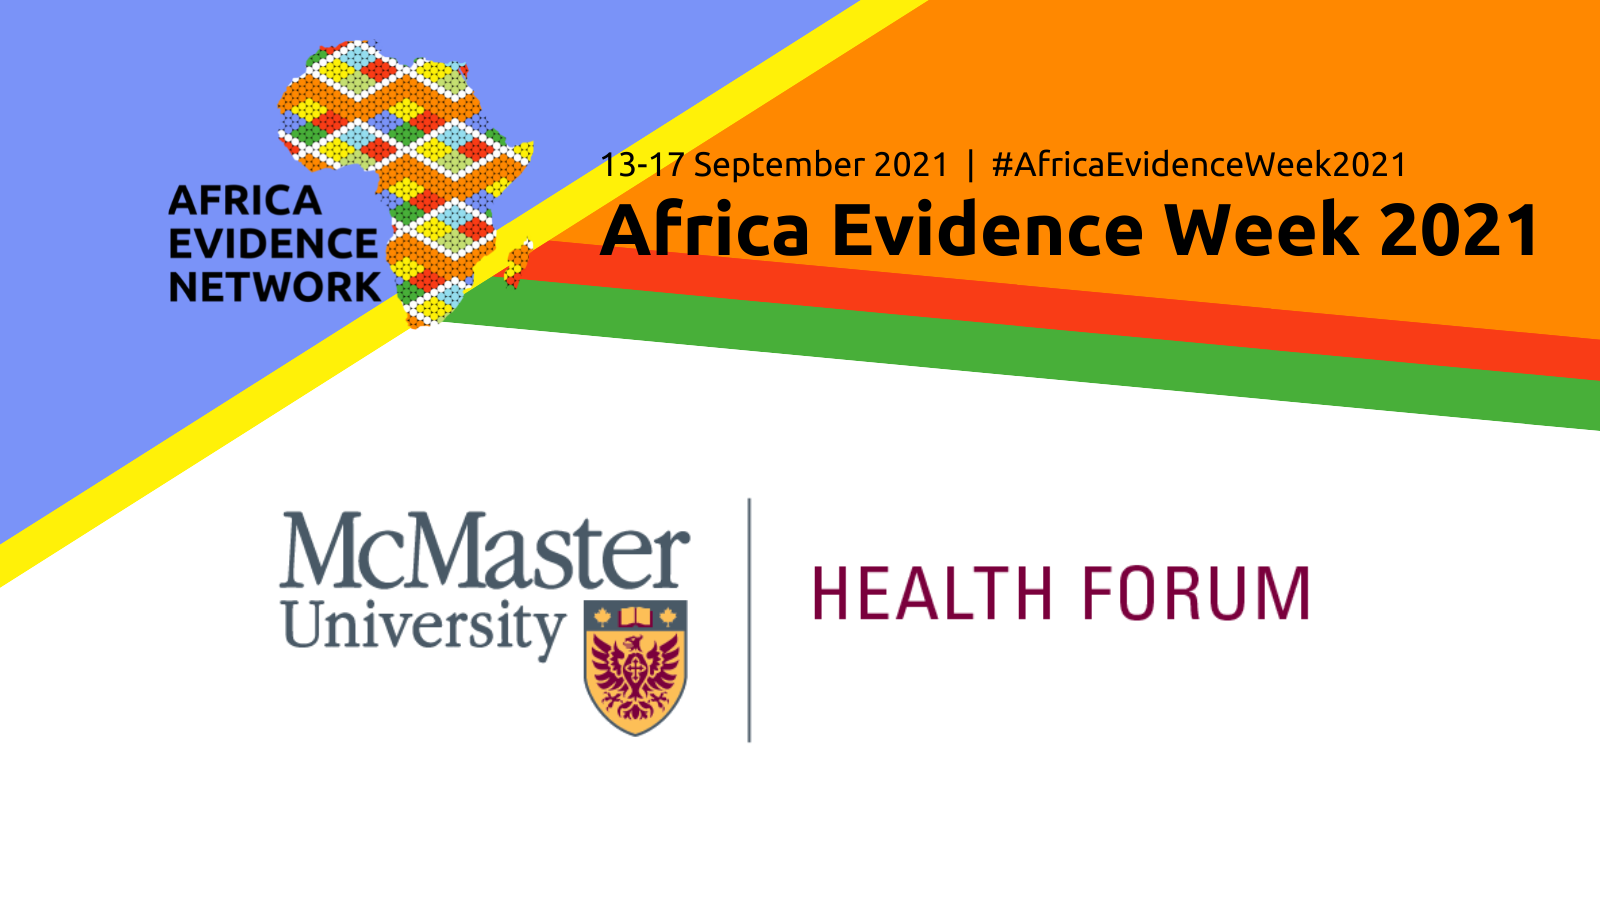 Africa Evidence Week 2021 event: Decisions informed by best evidence for responding to societal challenges